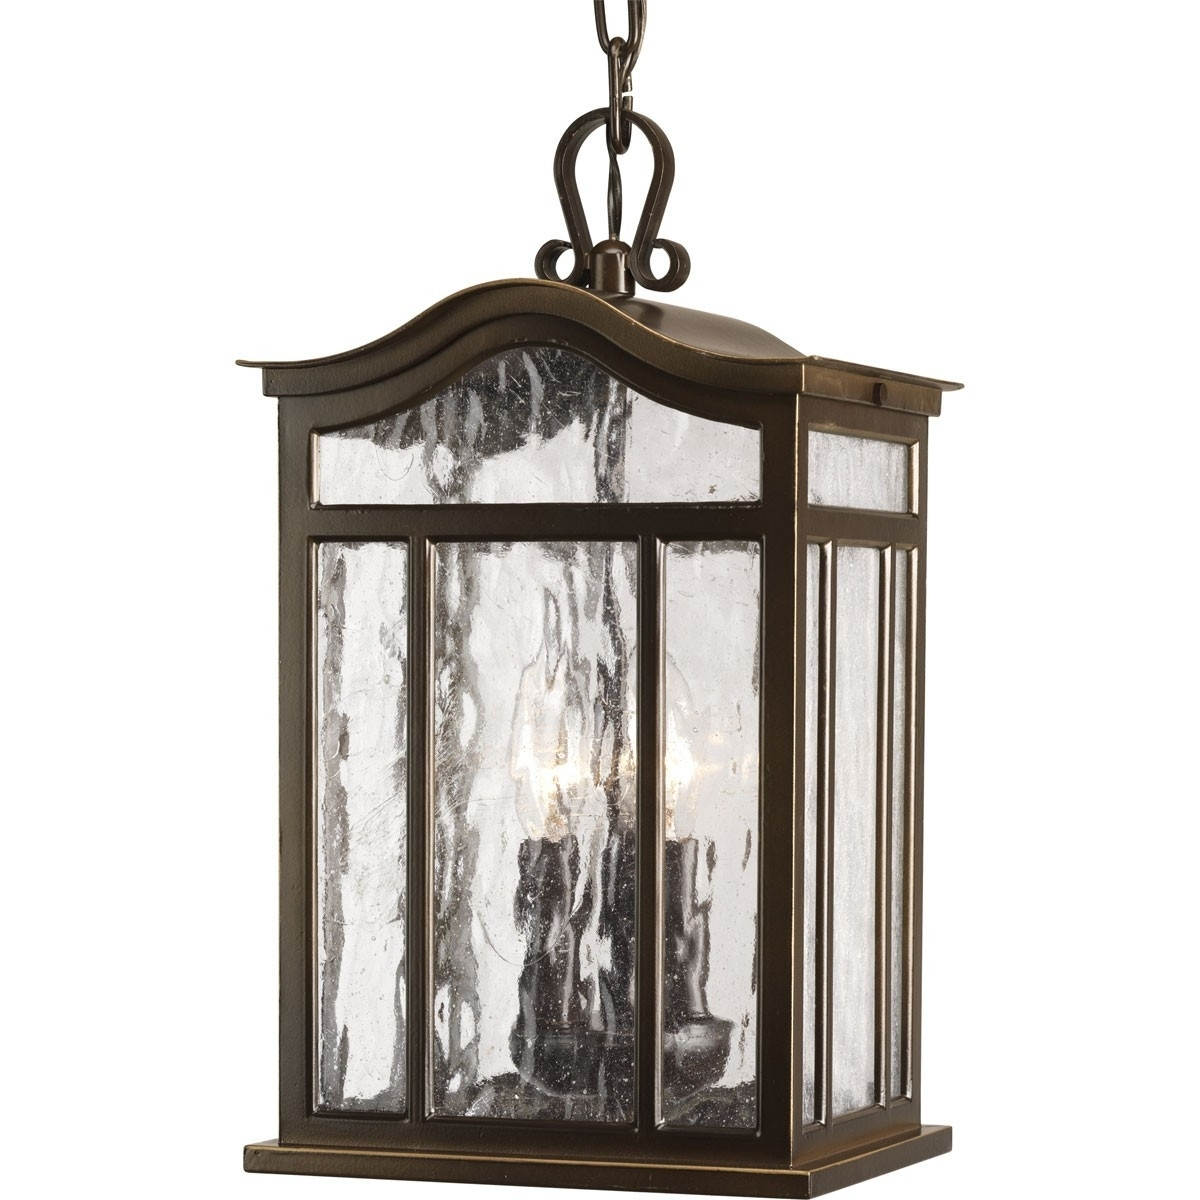 Alluring Casual European Style Three Light Outdoor Hanging Lantern Pertaining To New England Style Outdoor Lighting (View 2 of 15)